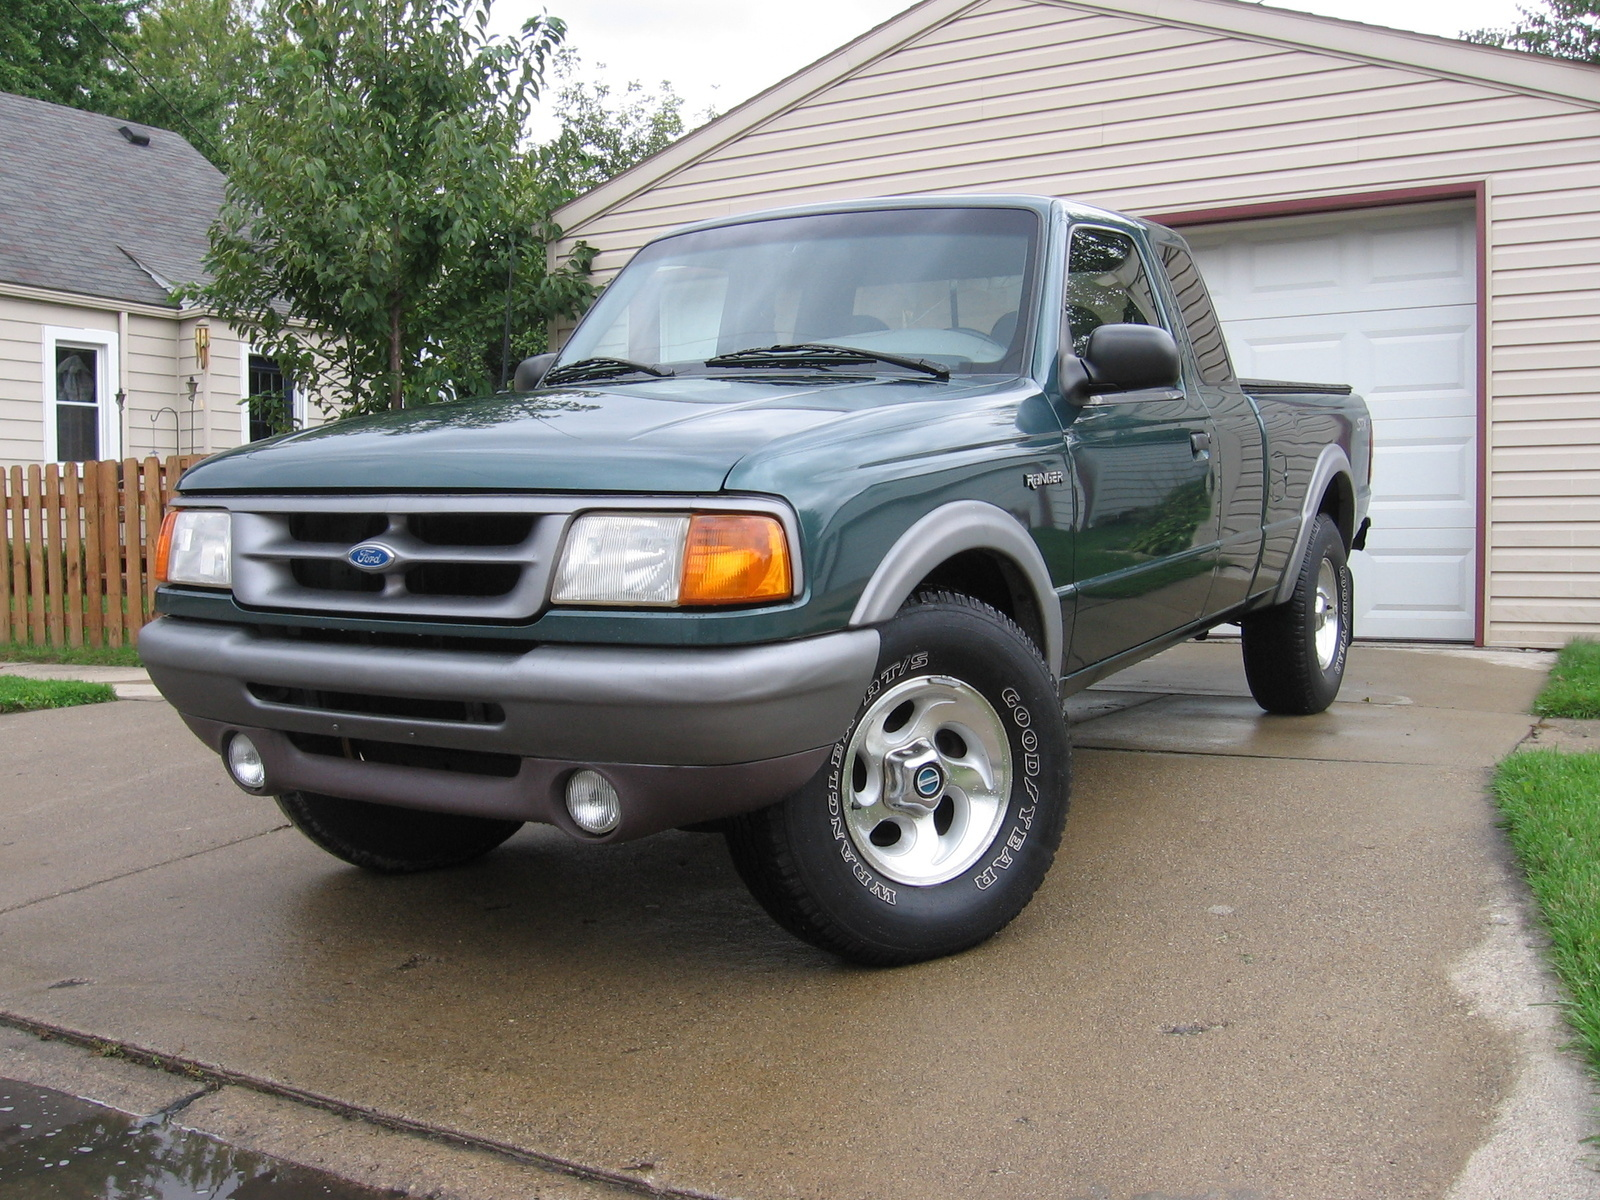 1993 Ford Ranger Lifted